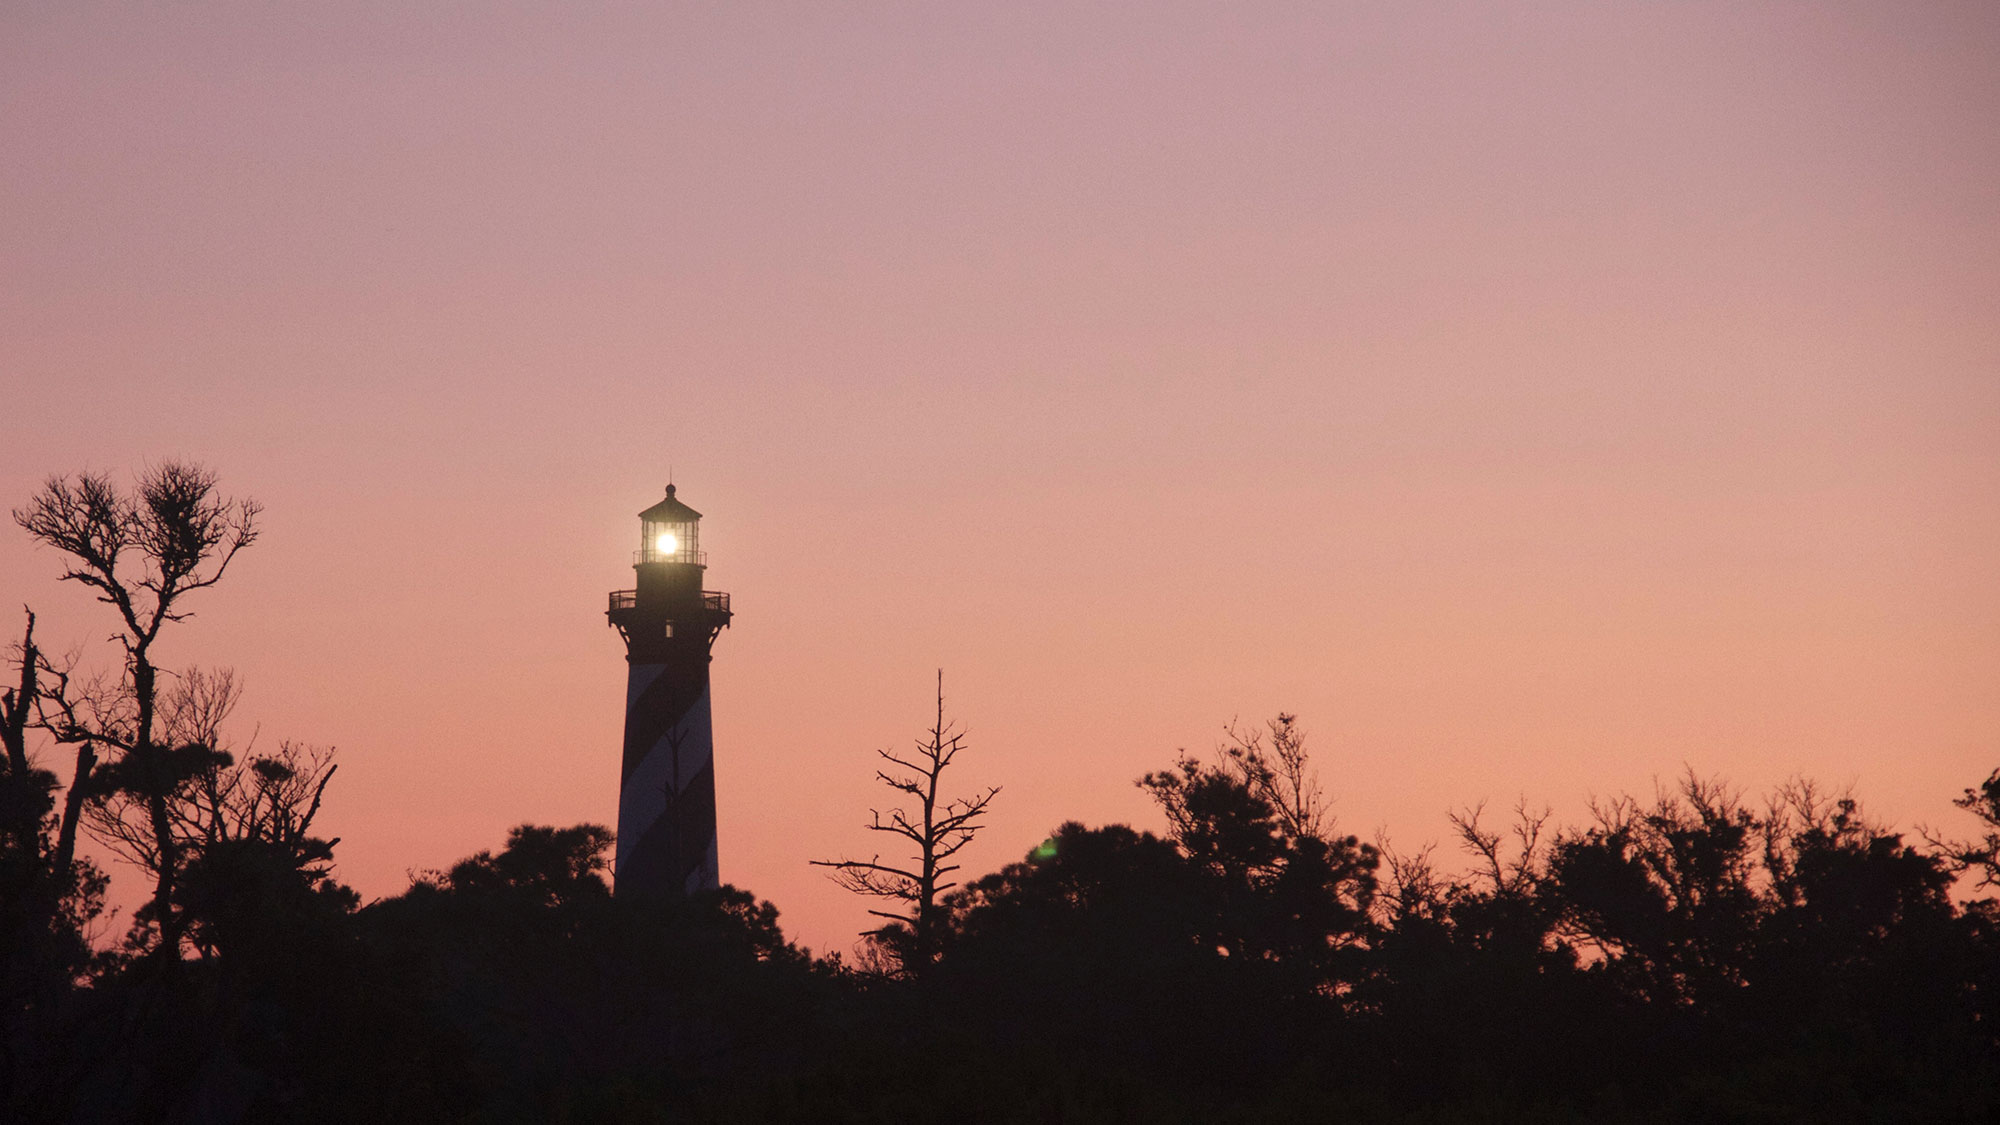 The Cape Hatteras Lighthouse at dawn.